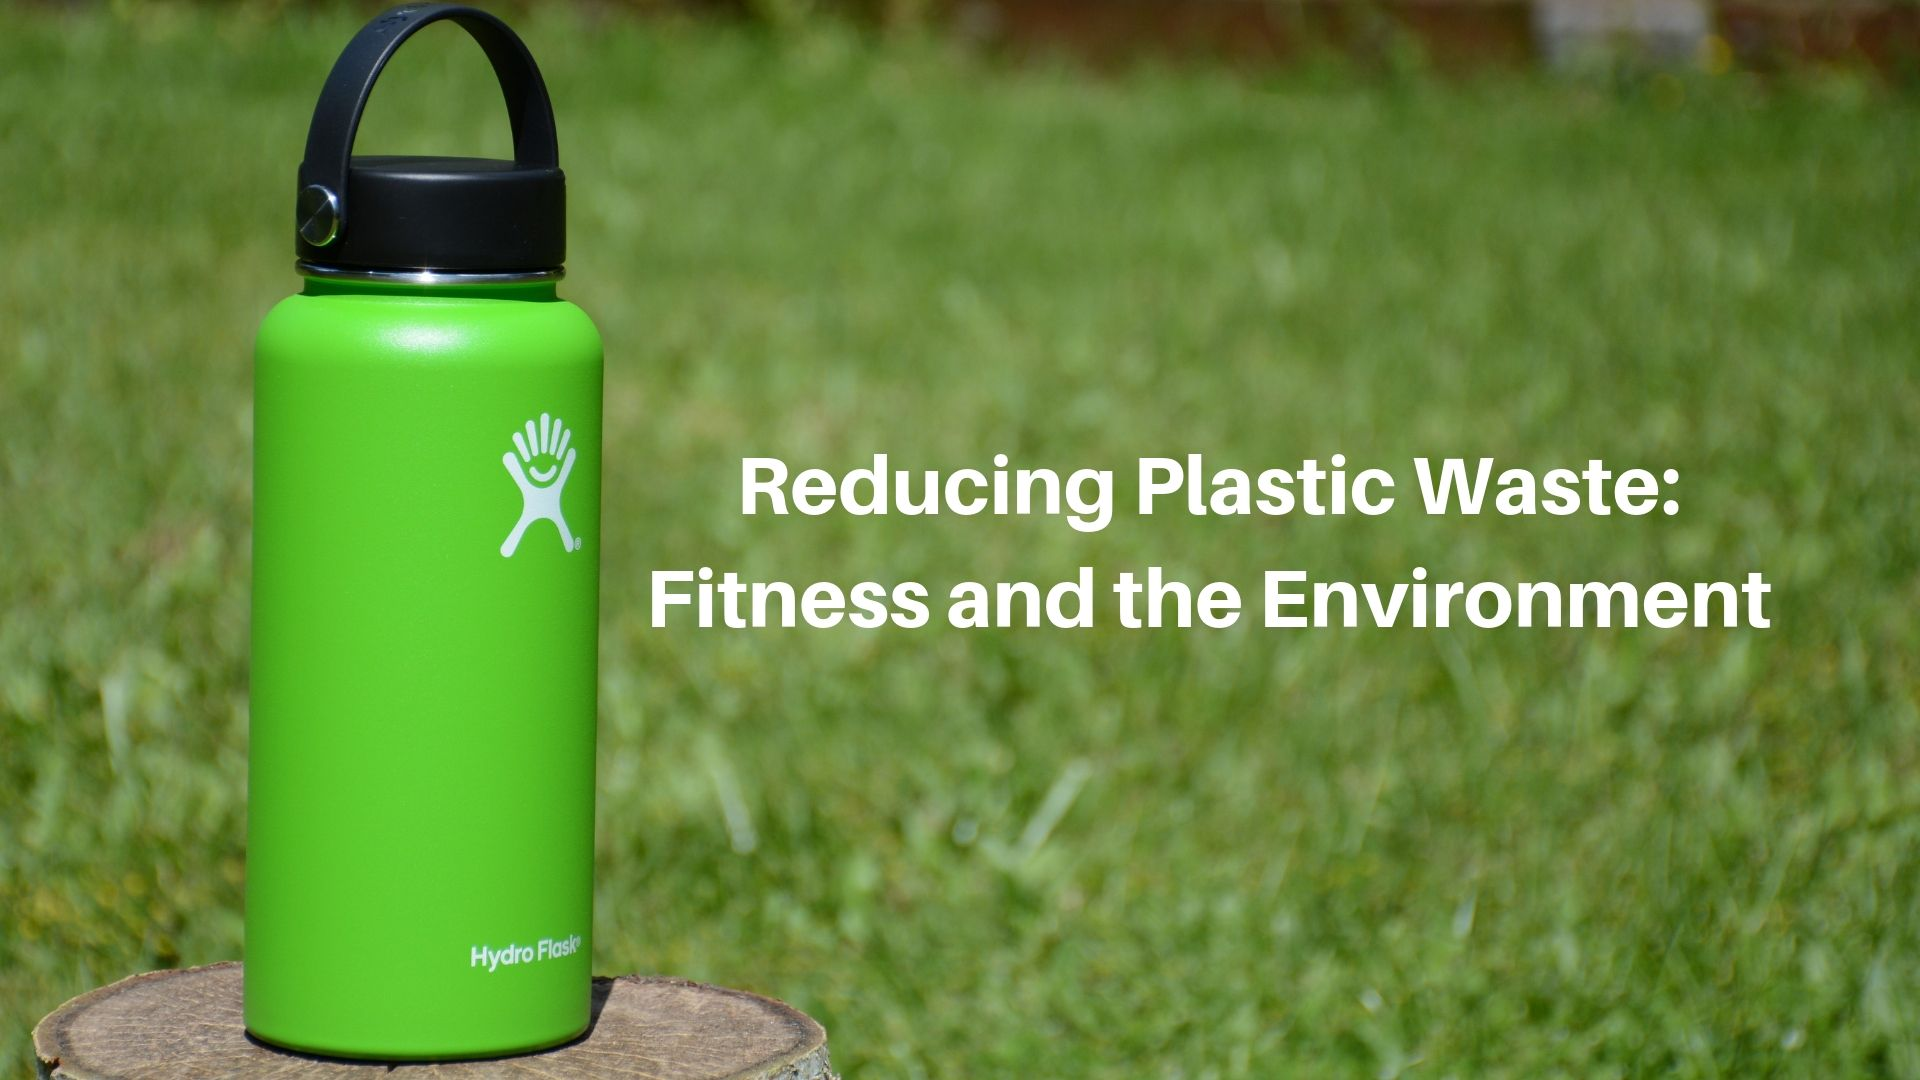 Reducing Plastic: Fitness and the Environment